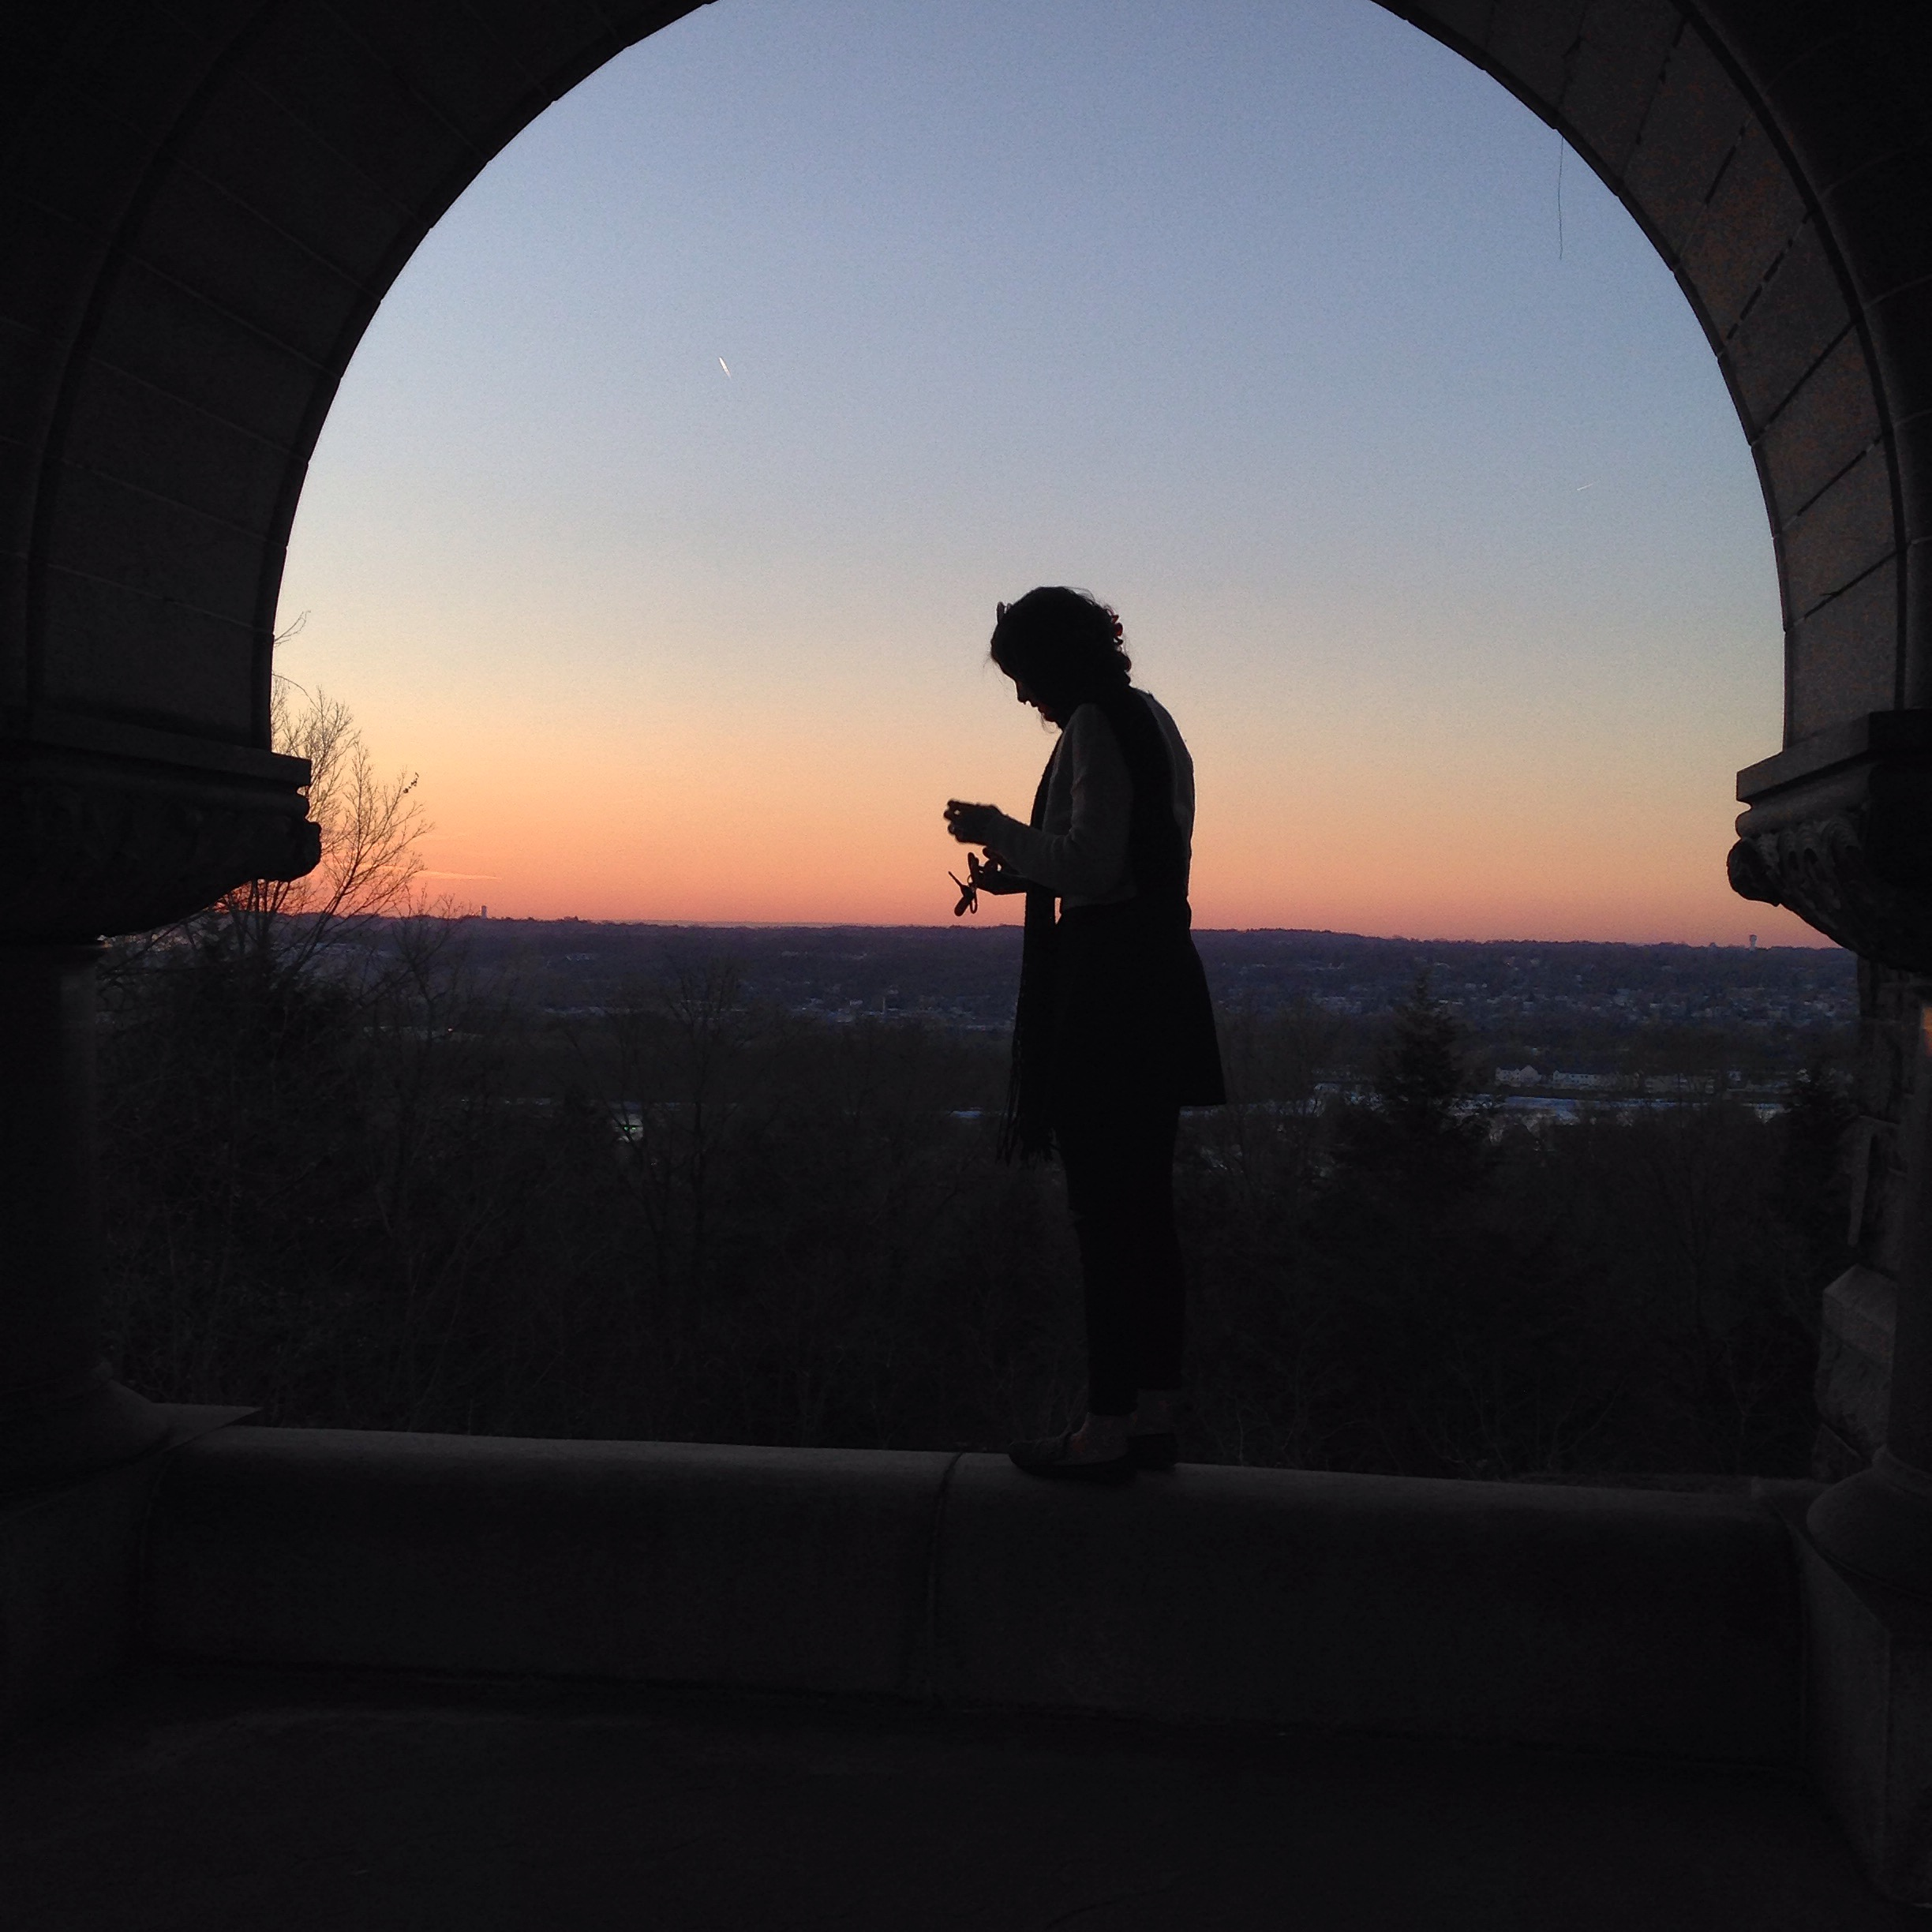 My favorite place for silhouettes.